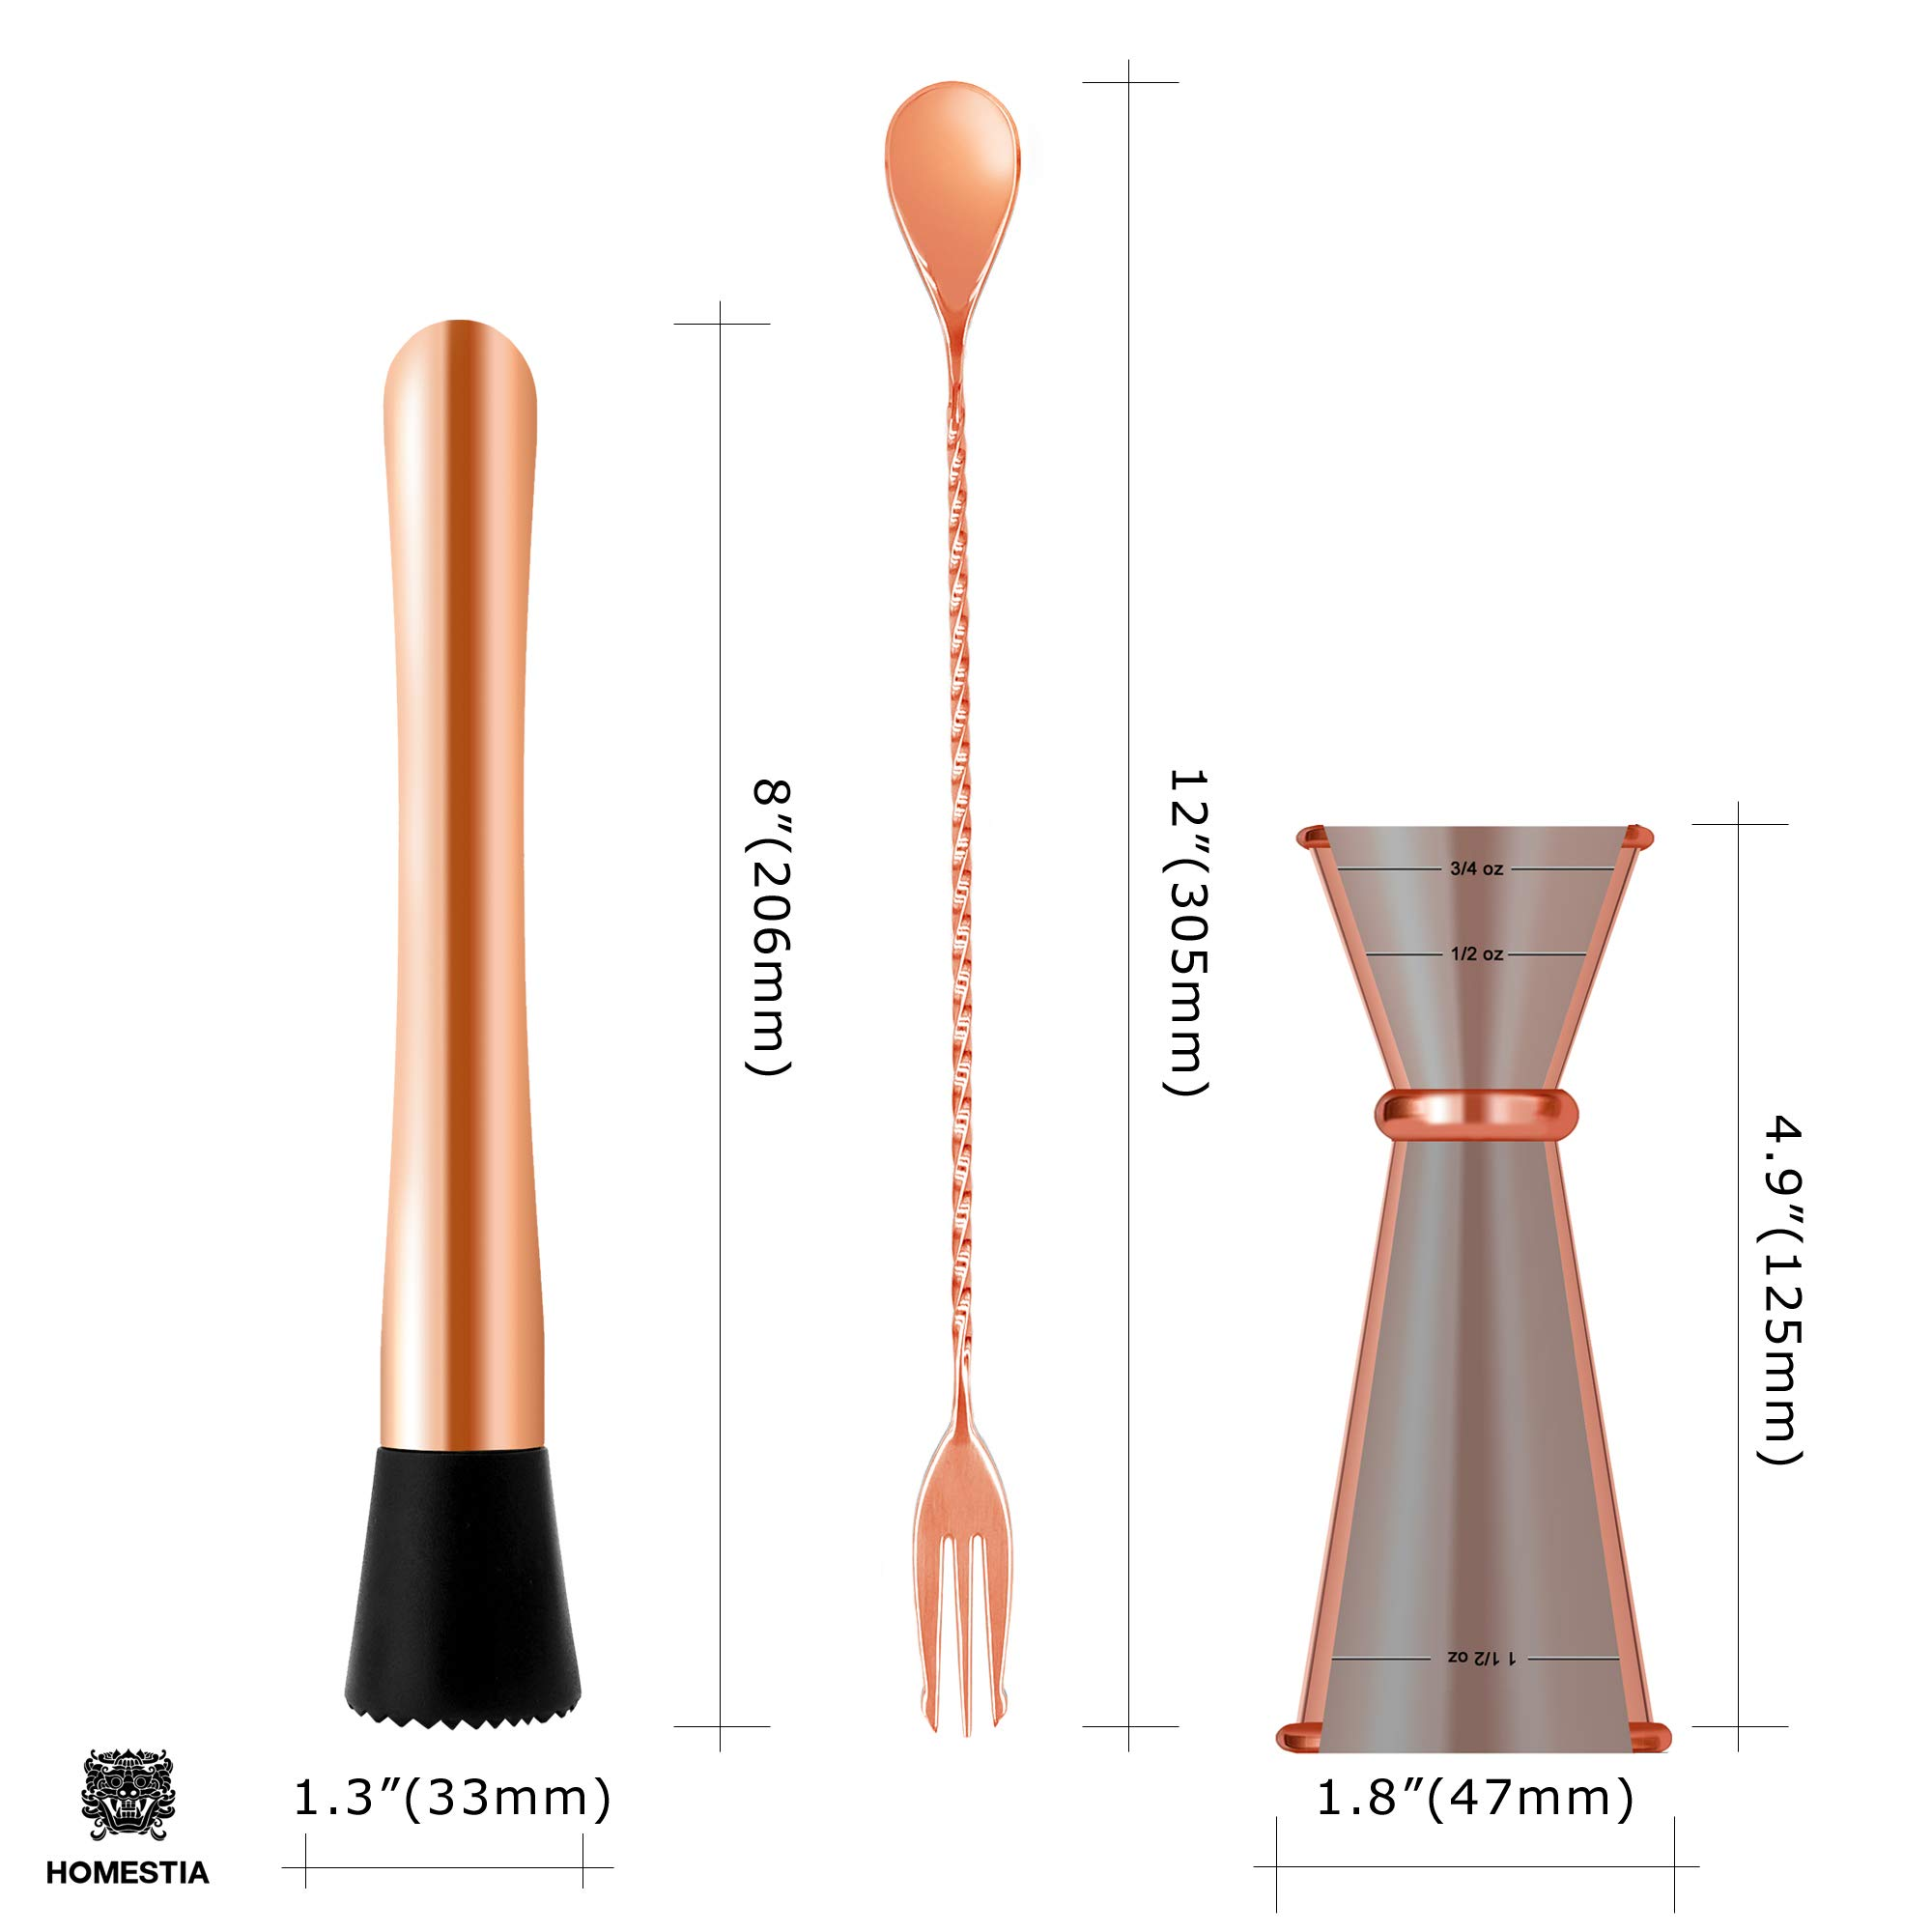 Homestia 3 PIECE Muddler Set Stainless Steel Cocktail Muddler with Double Jigger, Bar Spoon Mojito Bar Tool Copper by Homestia (Image #6)